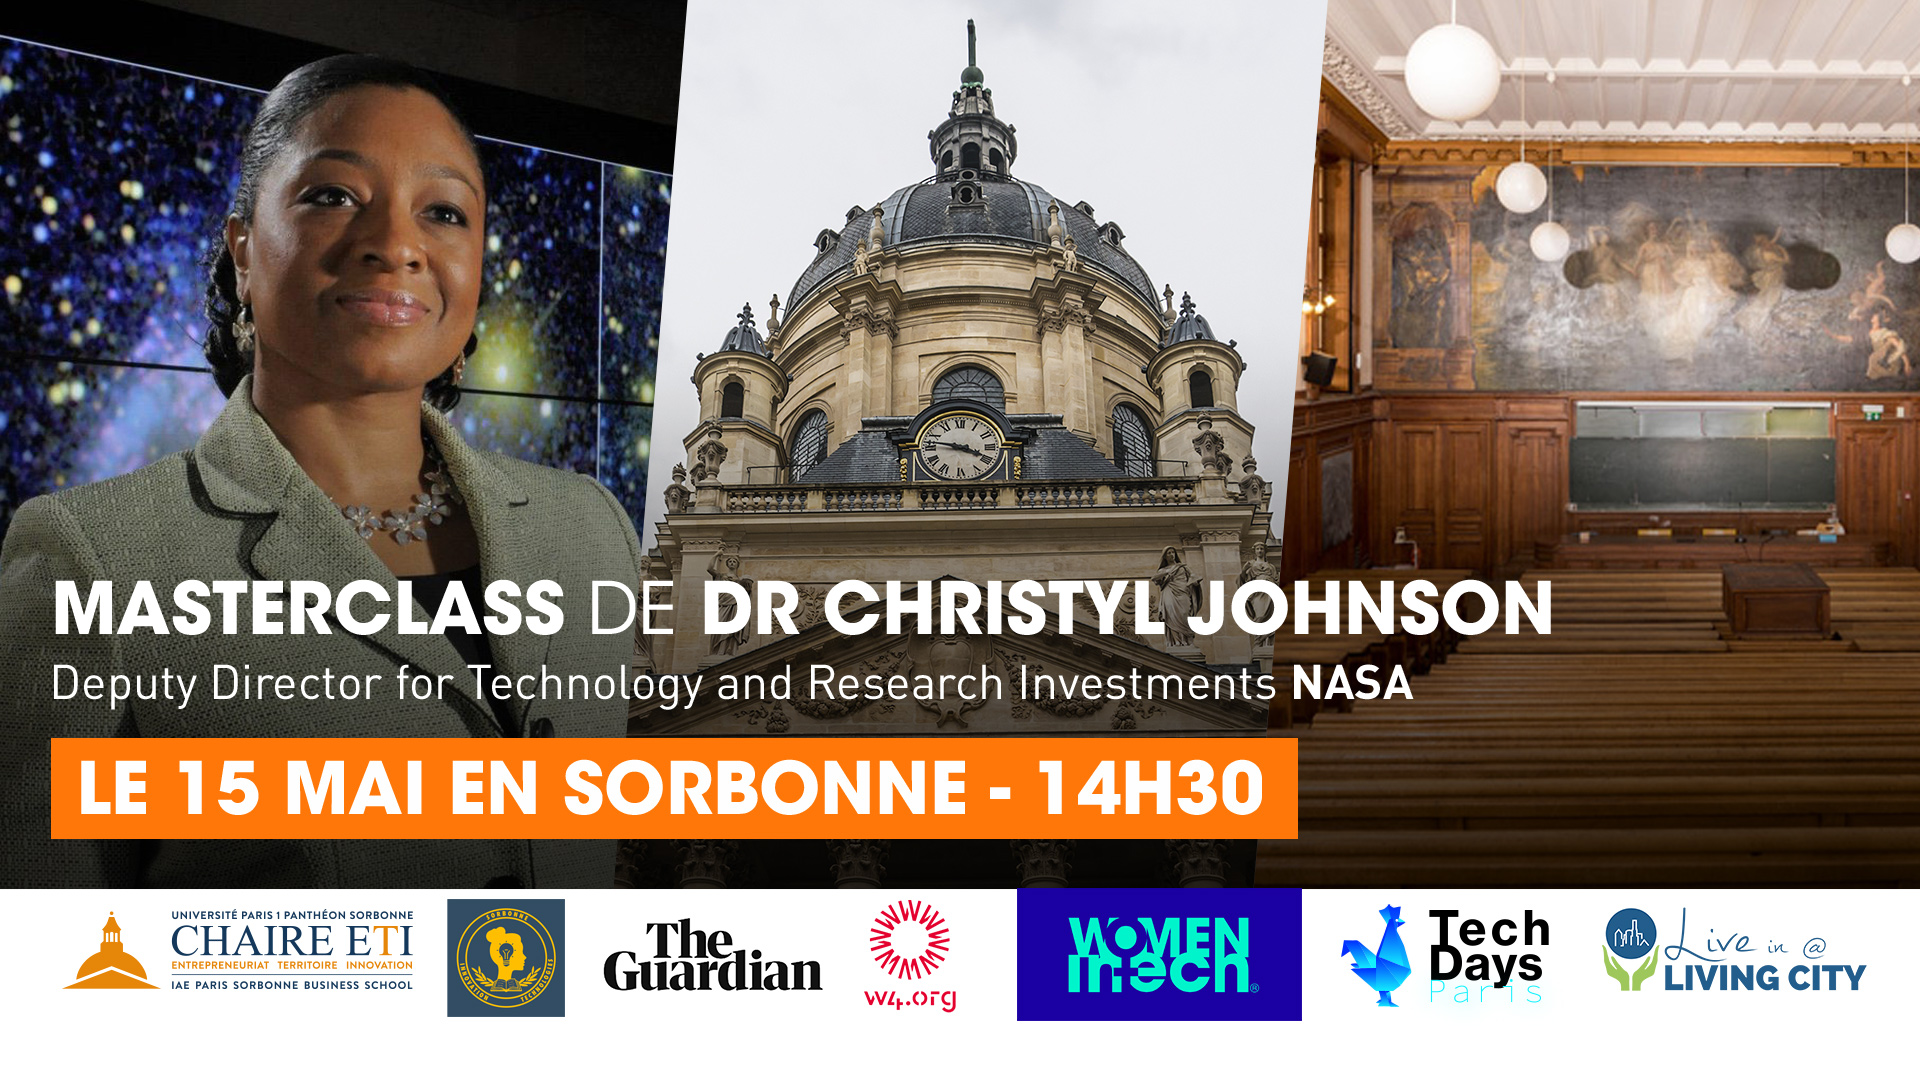 Masterclass by Dr. Christyl Johnson | Paris, France